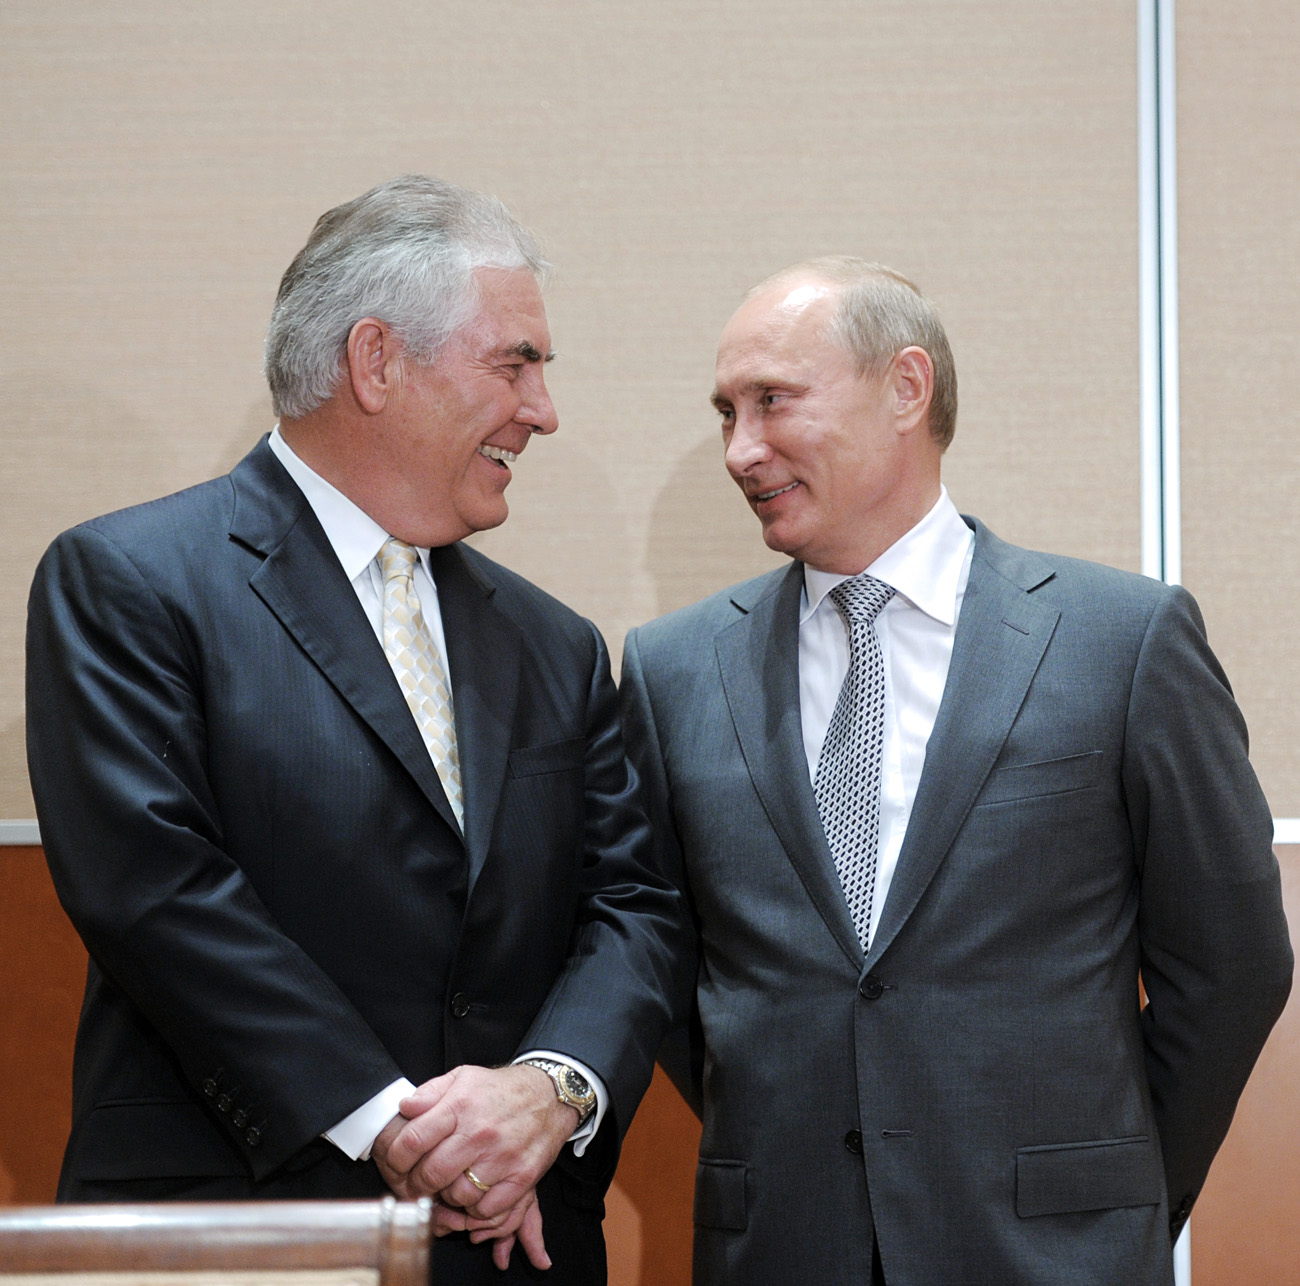 Russia's Prime Minister Vladimir Putin and ExxonMobil President and Chief Executive Officer Rex Tillerson attended the ceremony of signing of the Rosneft-ExxonMobil strategic partnership agreement, 2011.